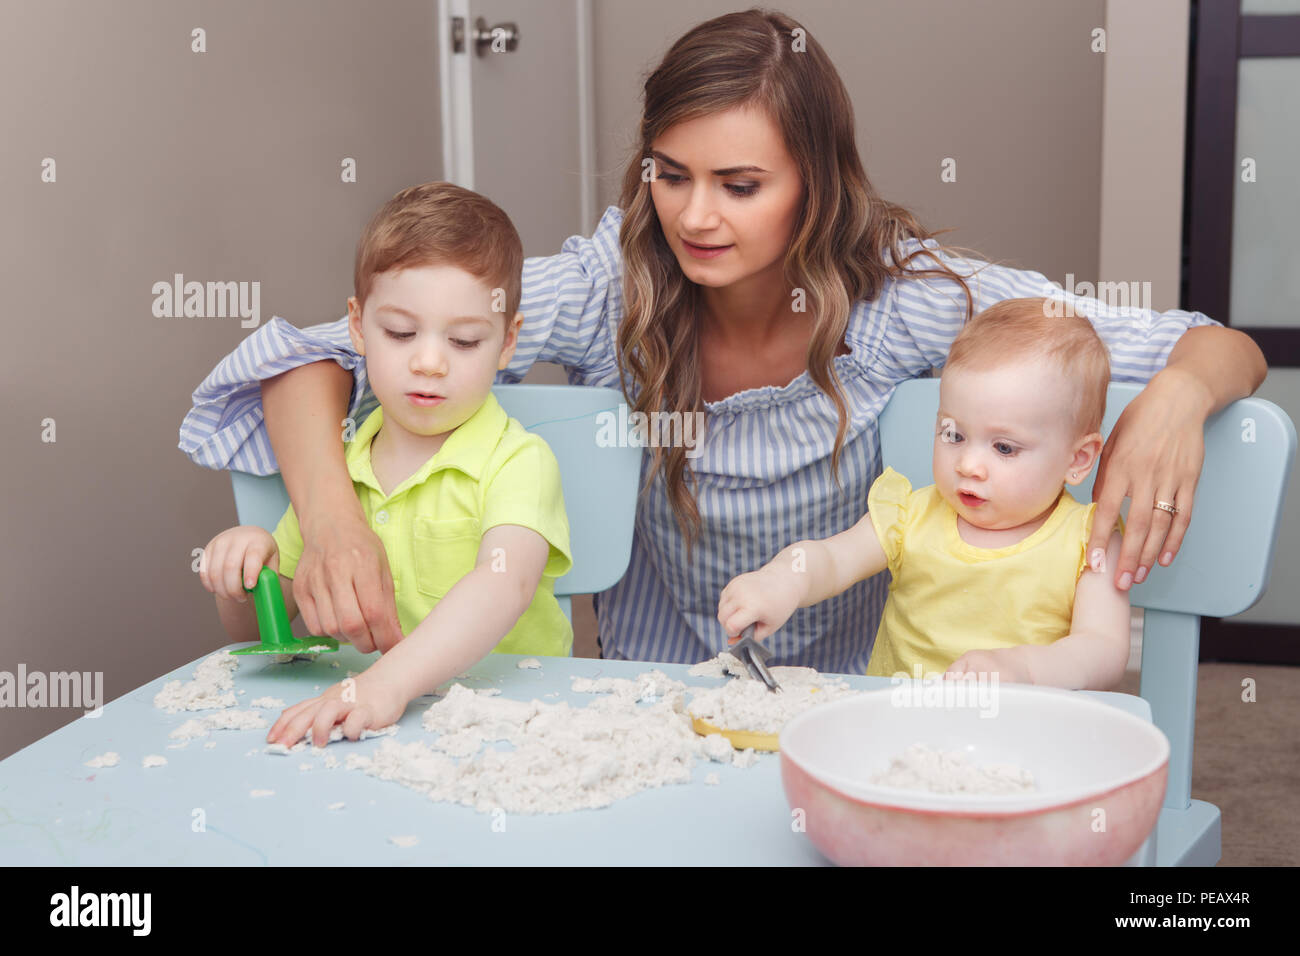 Group portrait of young white Caucasian mother with children playing kinetic sand together at home. Early creativity brain development concept. Lifest - Stock Image